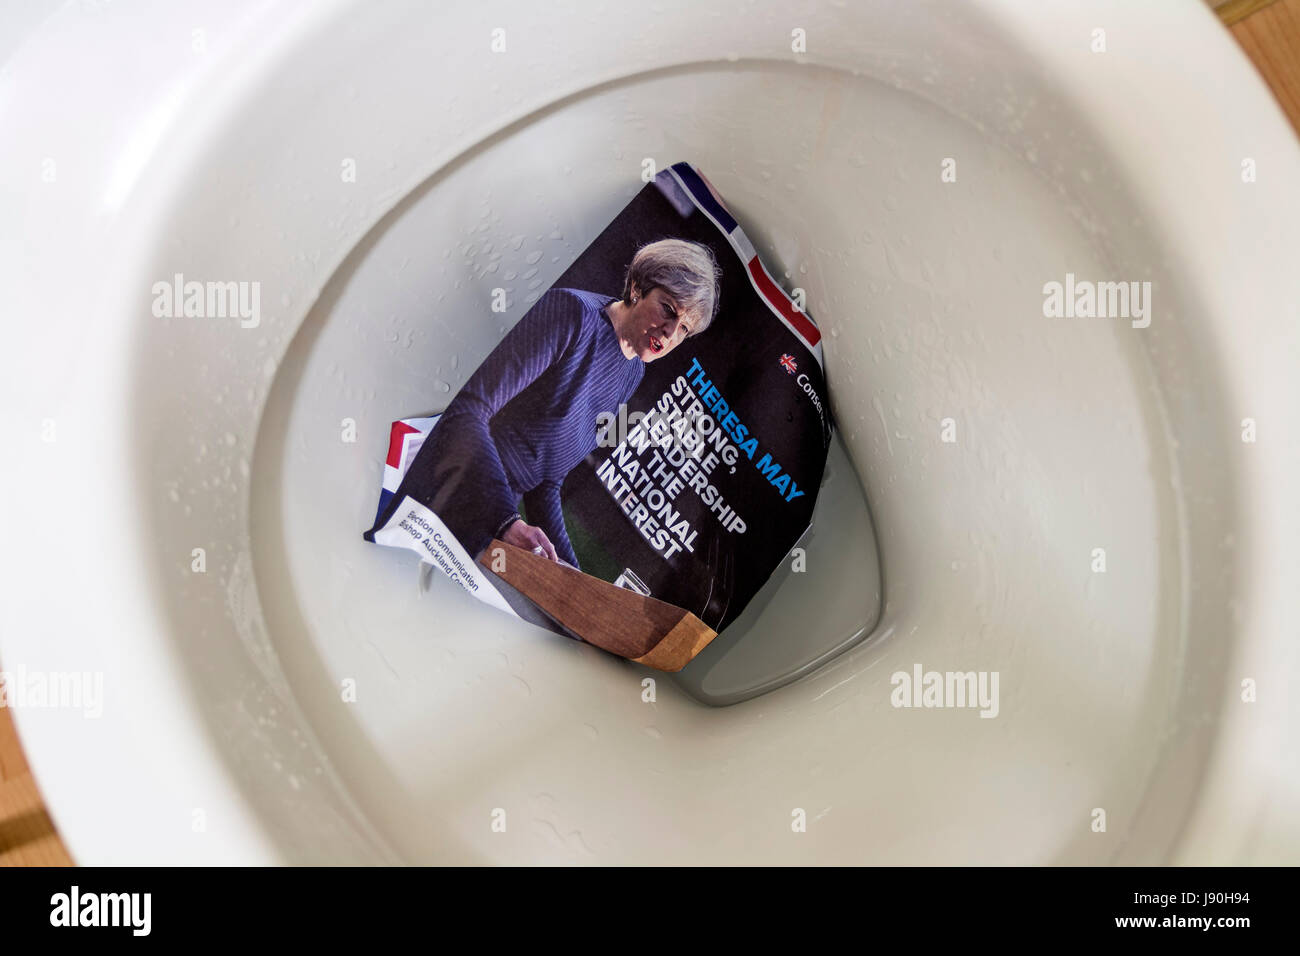 Conservative Election Leaflet in Toilet - Stock Image